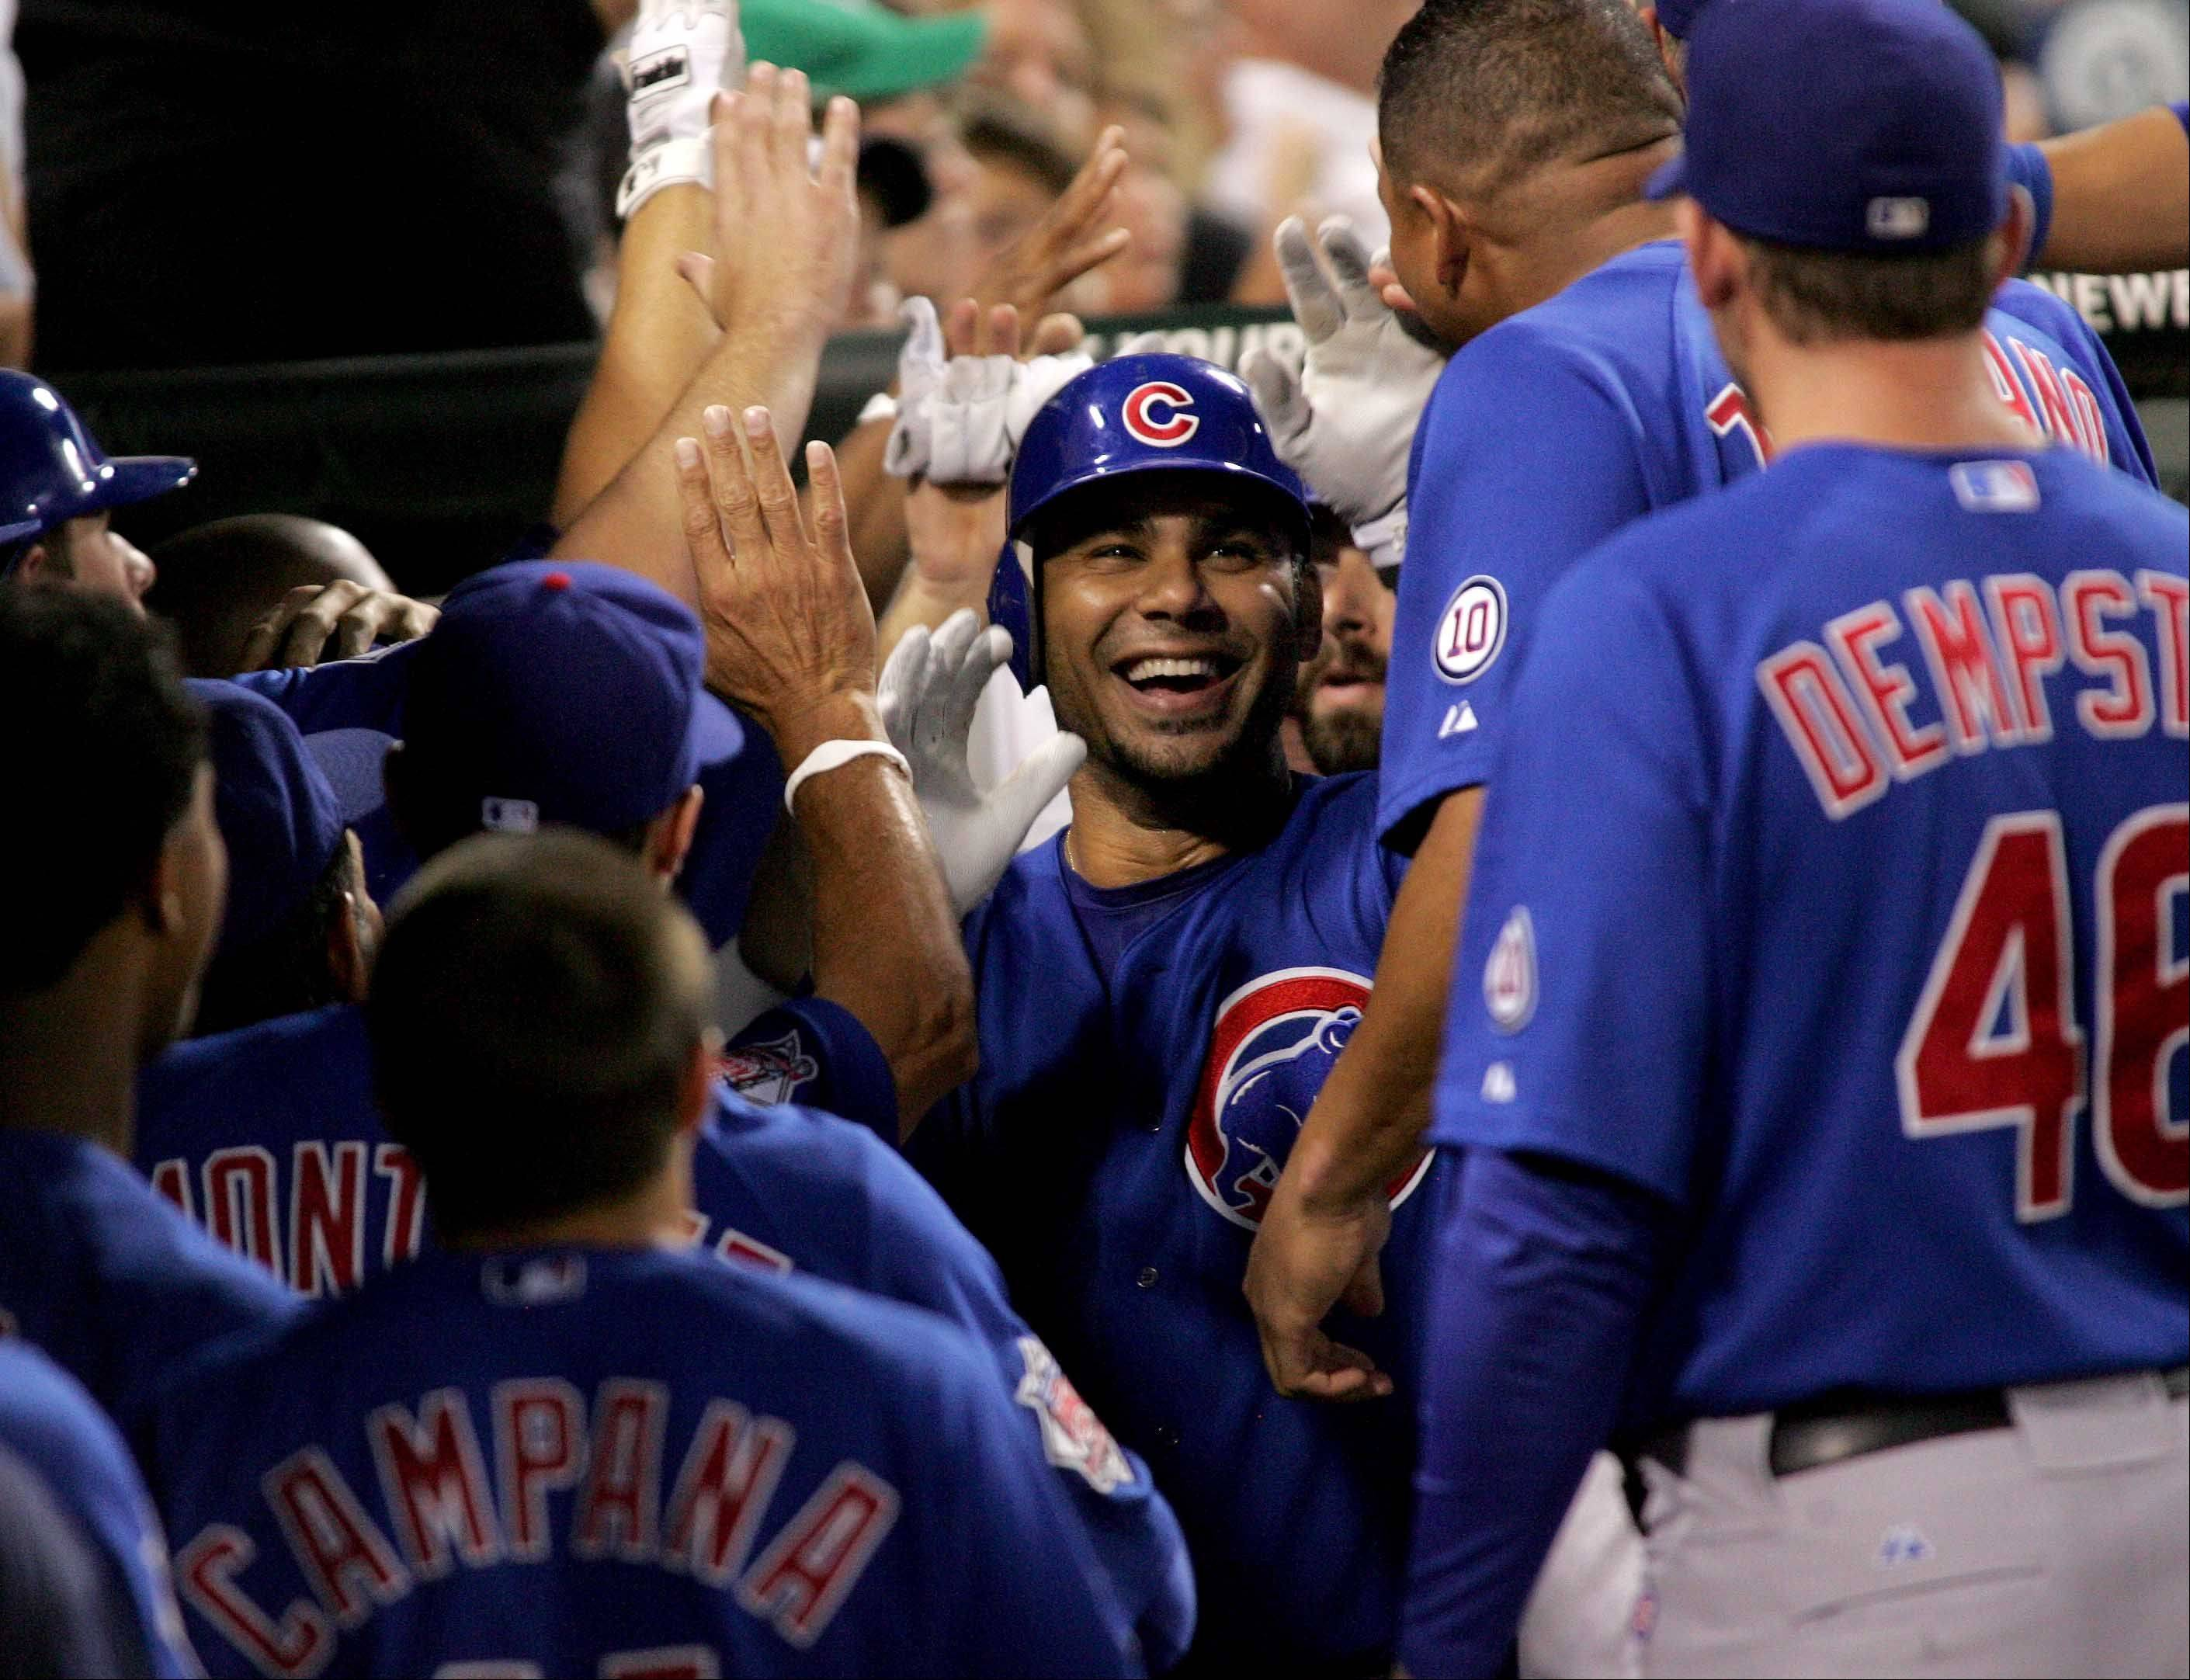 Cubs put it all together in win